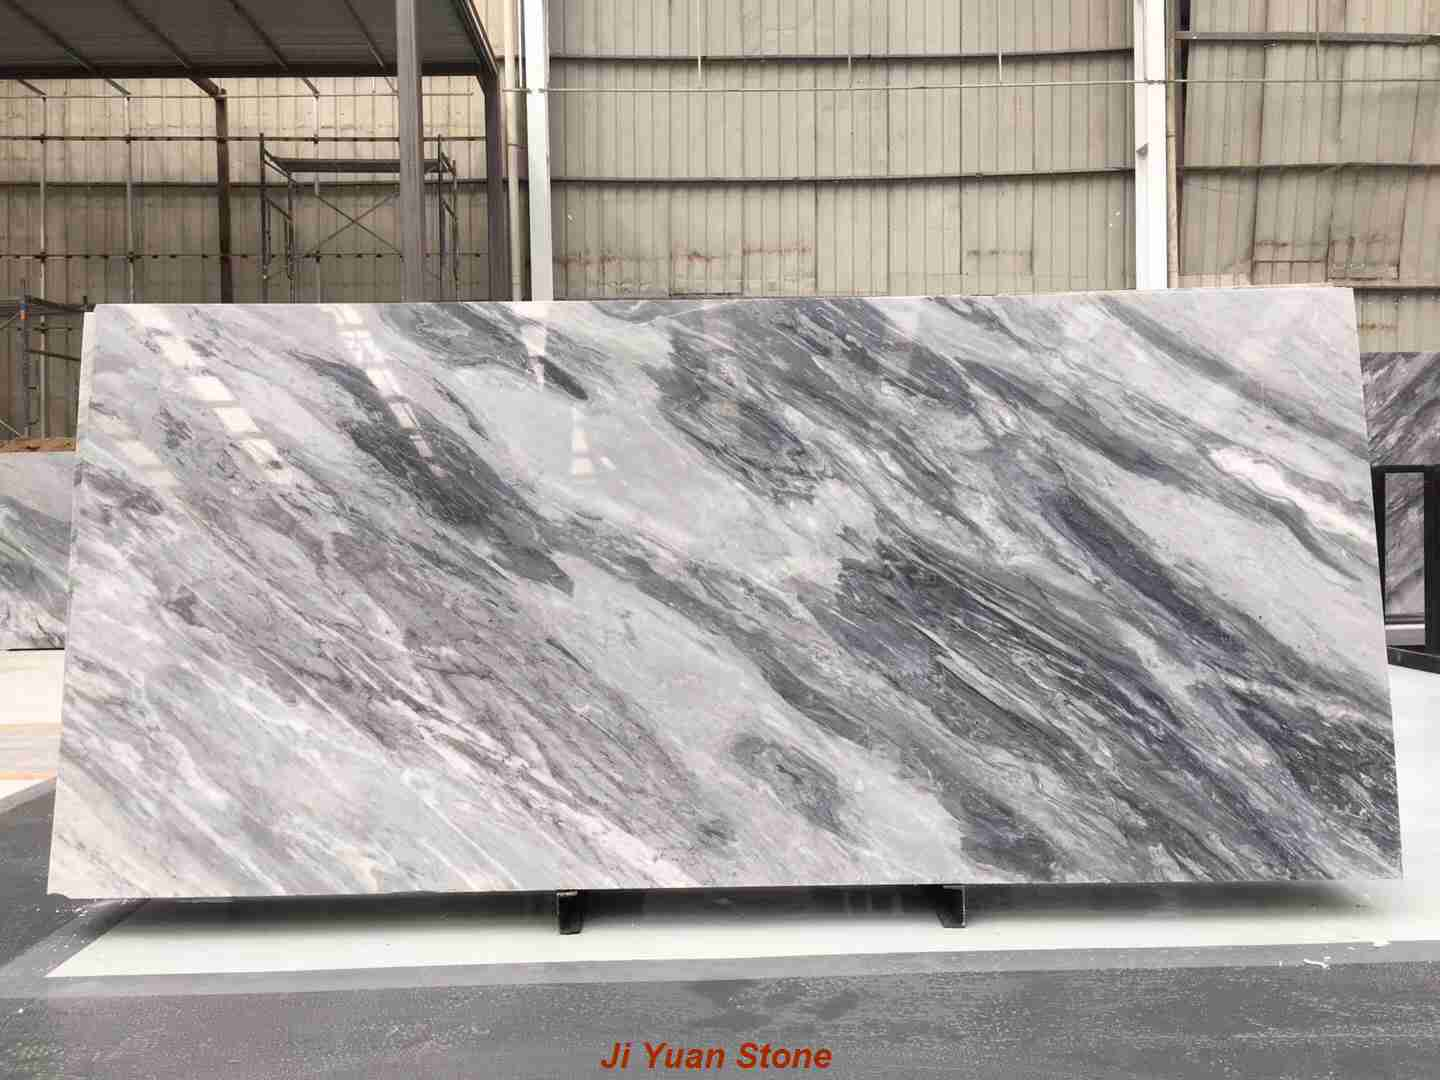 Grey Marble Tile Floor Grey Marble Vinyl Flooring Grey Bathroom Vanity Top White Grey Marble Bathroom Tundra Grey Marble Tiles Grey Marble Kitchen Worktop